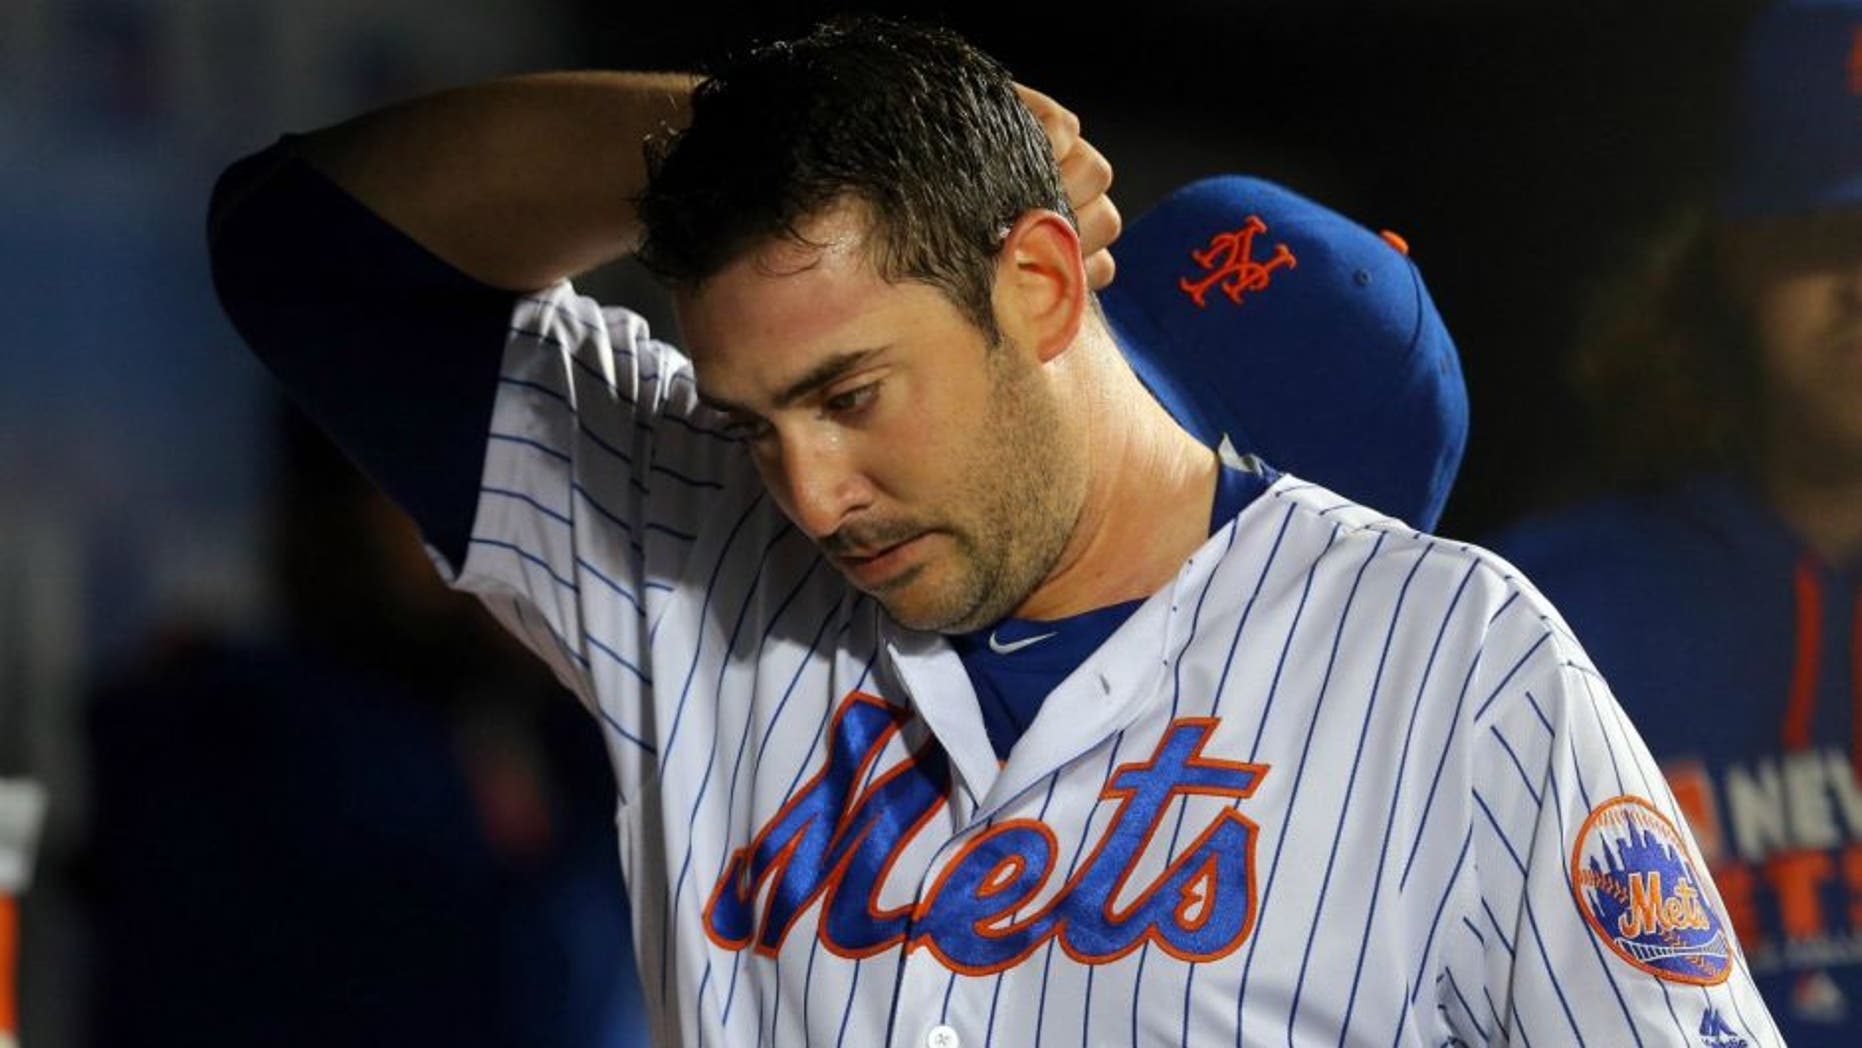 May 3, 2016; New York City, NY, USA; New York Mets starting pitcher Matt Harvey (33) reacts in the dugout after being removed from the game against the Atlanta Braves during the sixth inning at Citi Field. Mandatory Credit: Brad Penner-USA TODAY Sports